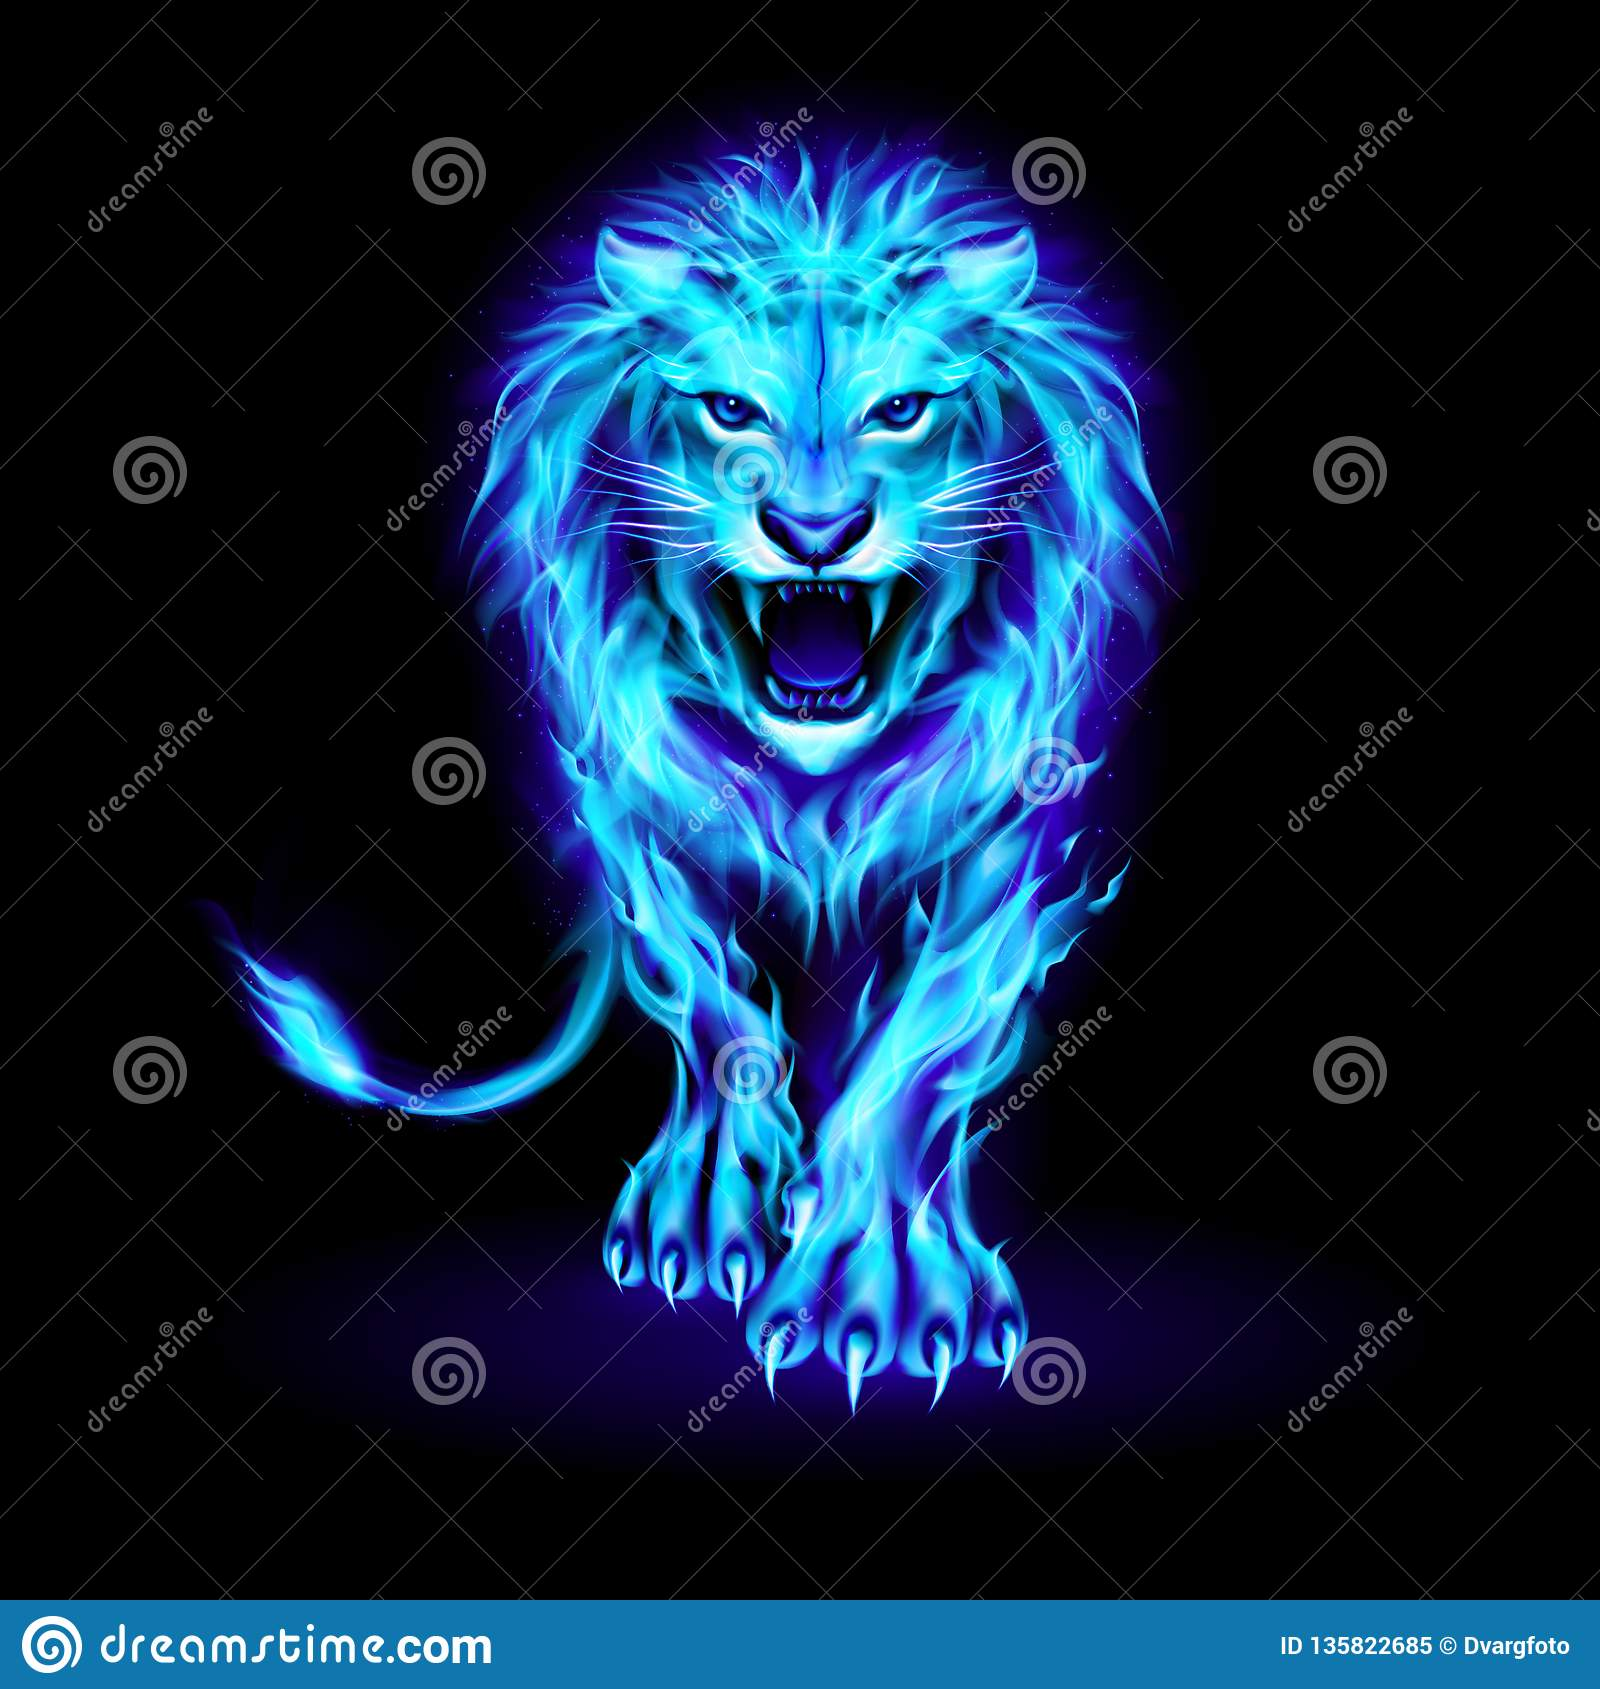 Fire Lion Hd Images Free Download